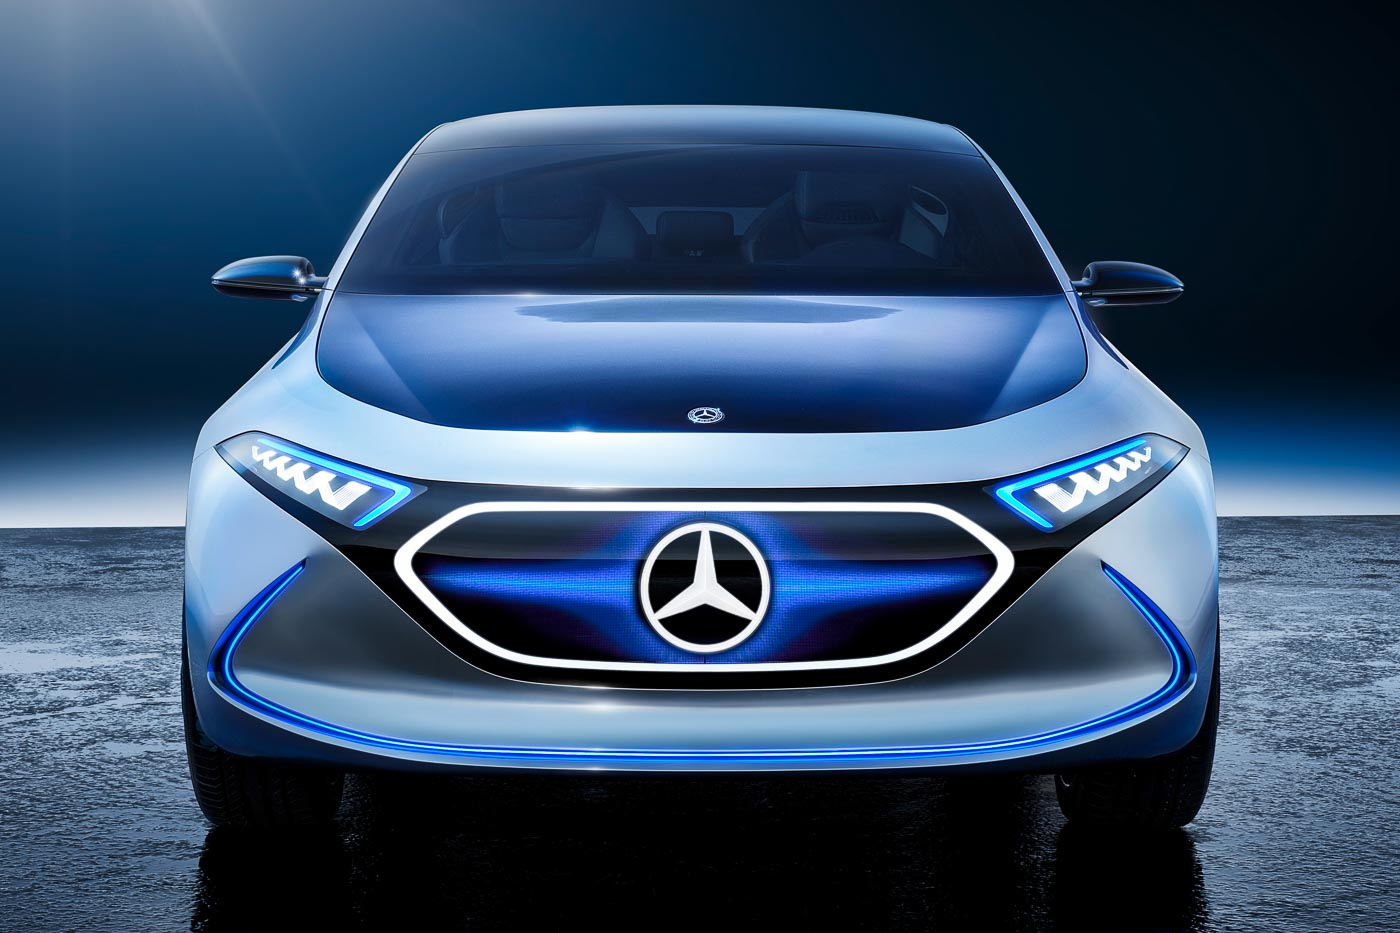 Mercedes-Benz EQA Concept - AWD electric hatchback. 0 - 100 km/h in 5s! - AutoBuzz.my